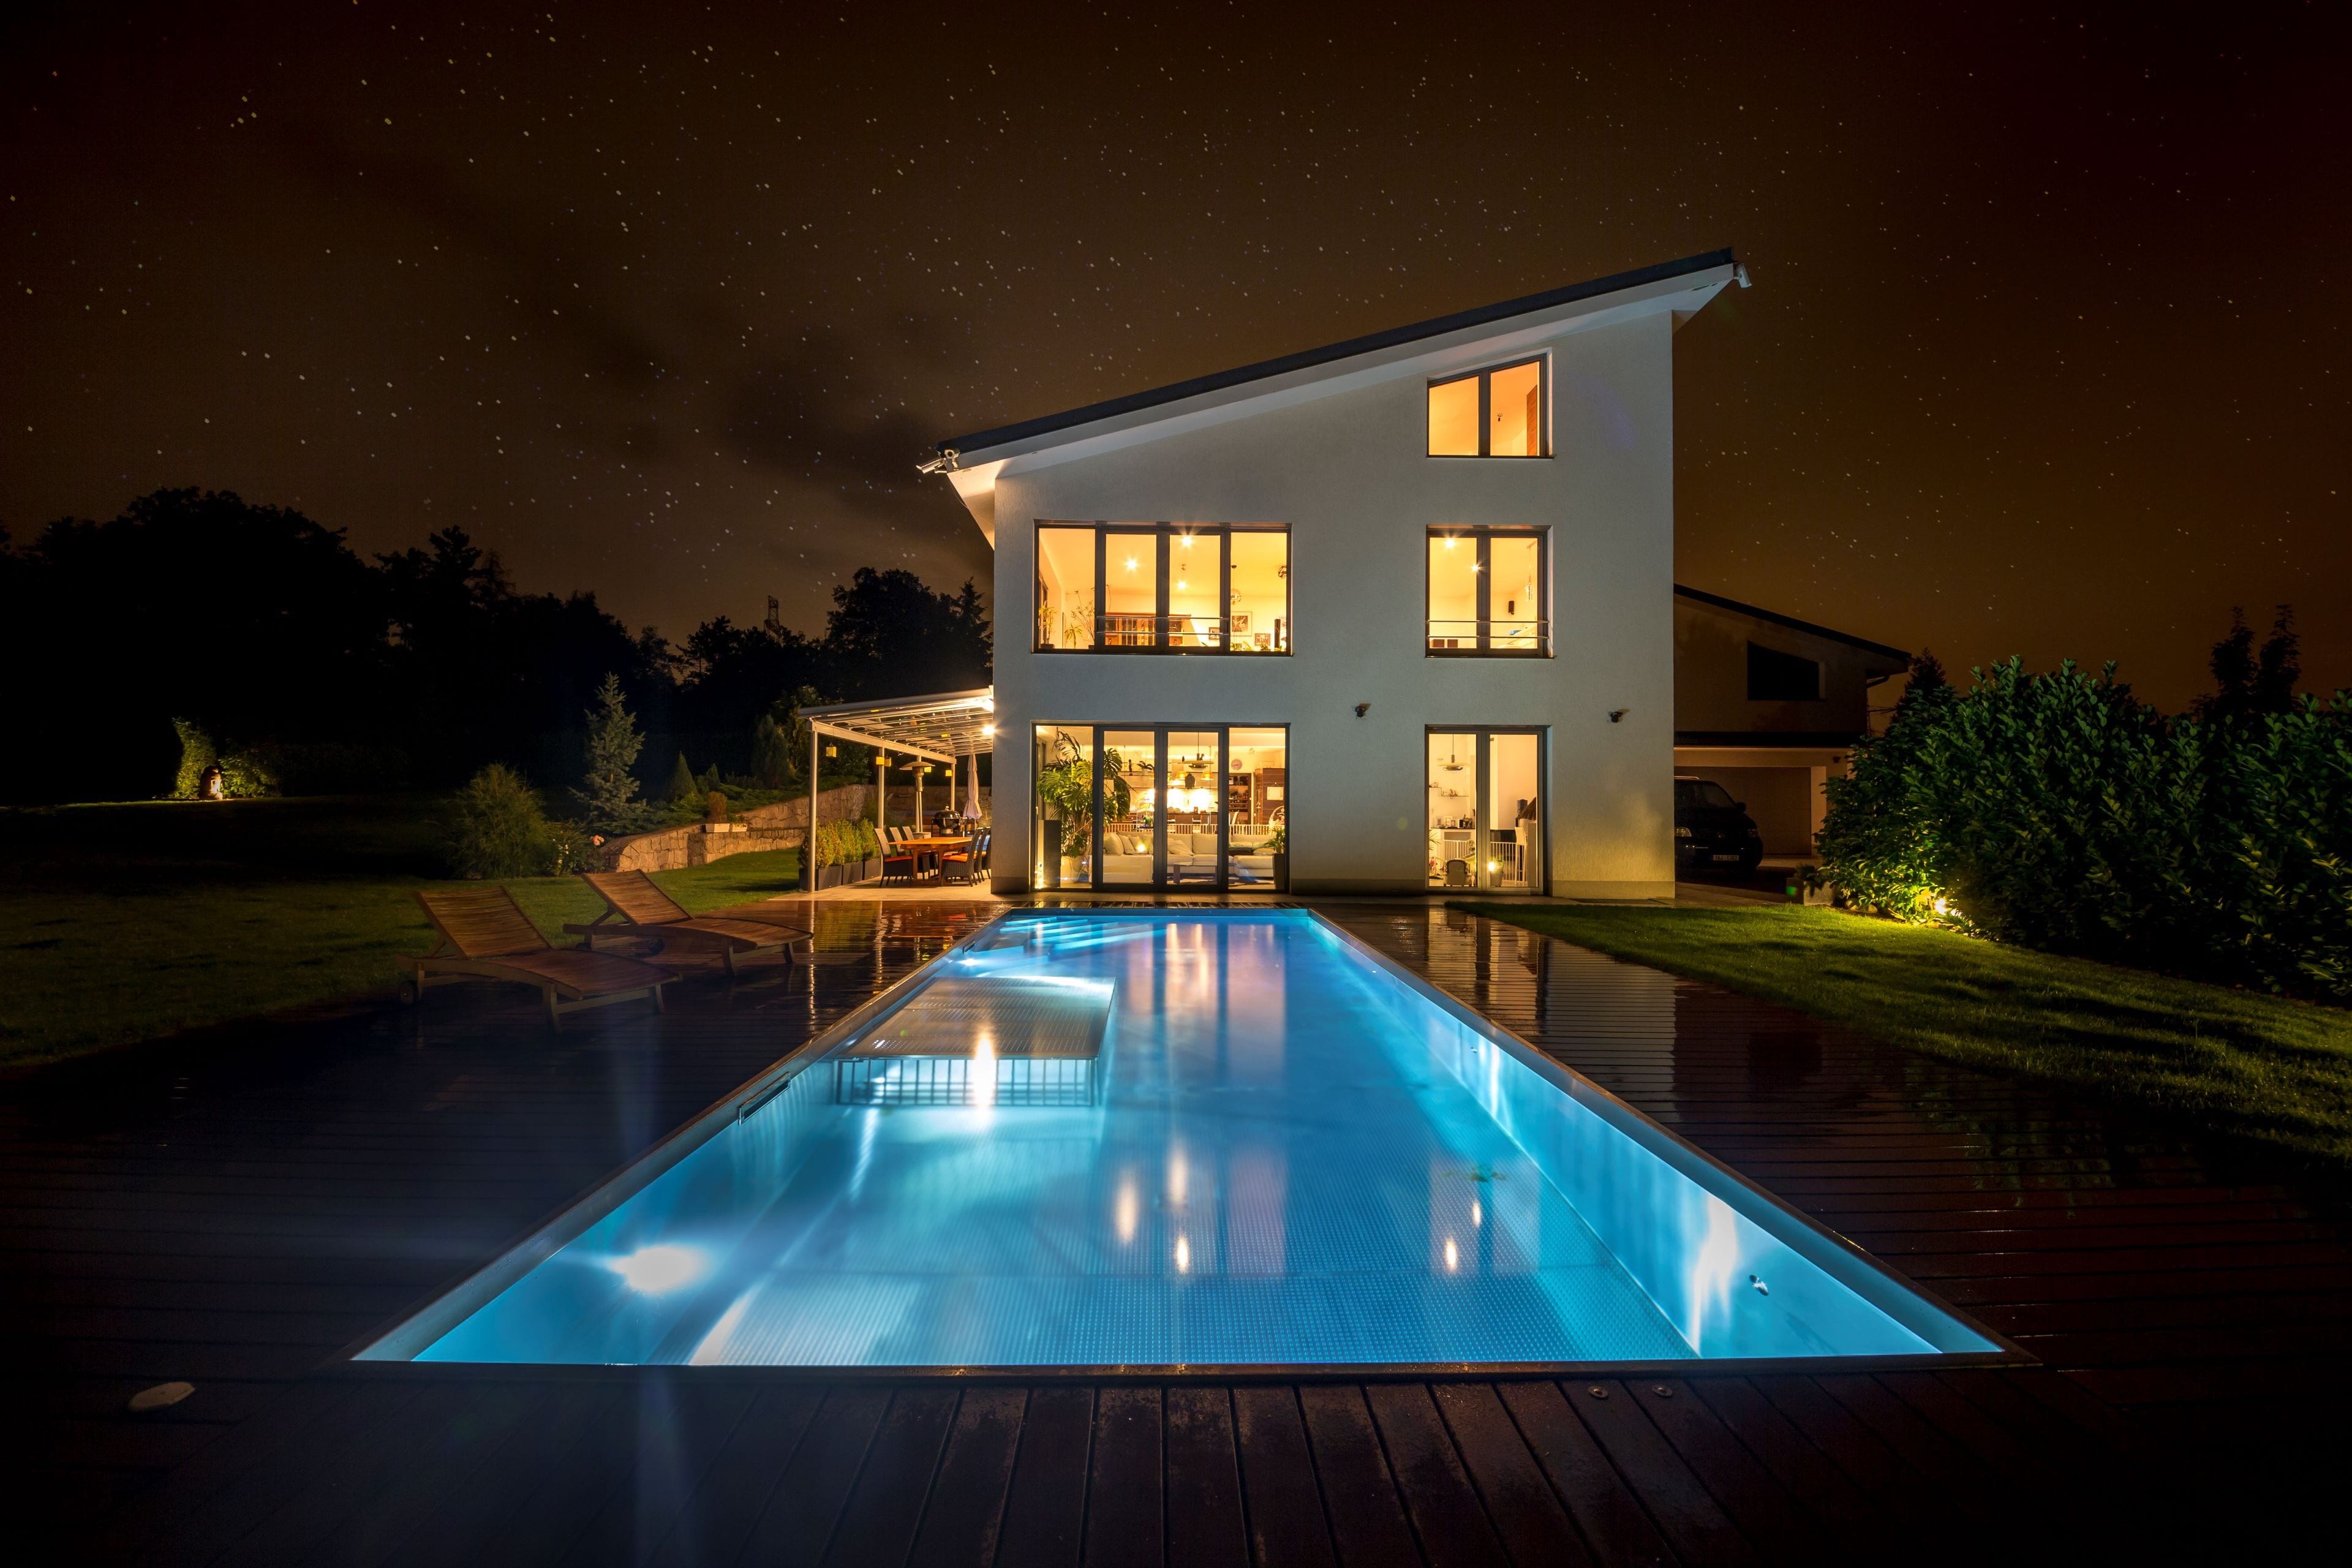 Pool Story: Realization of the IMAGINOX Stainless-Steel Pool!